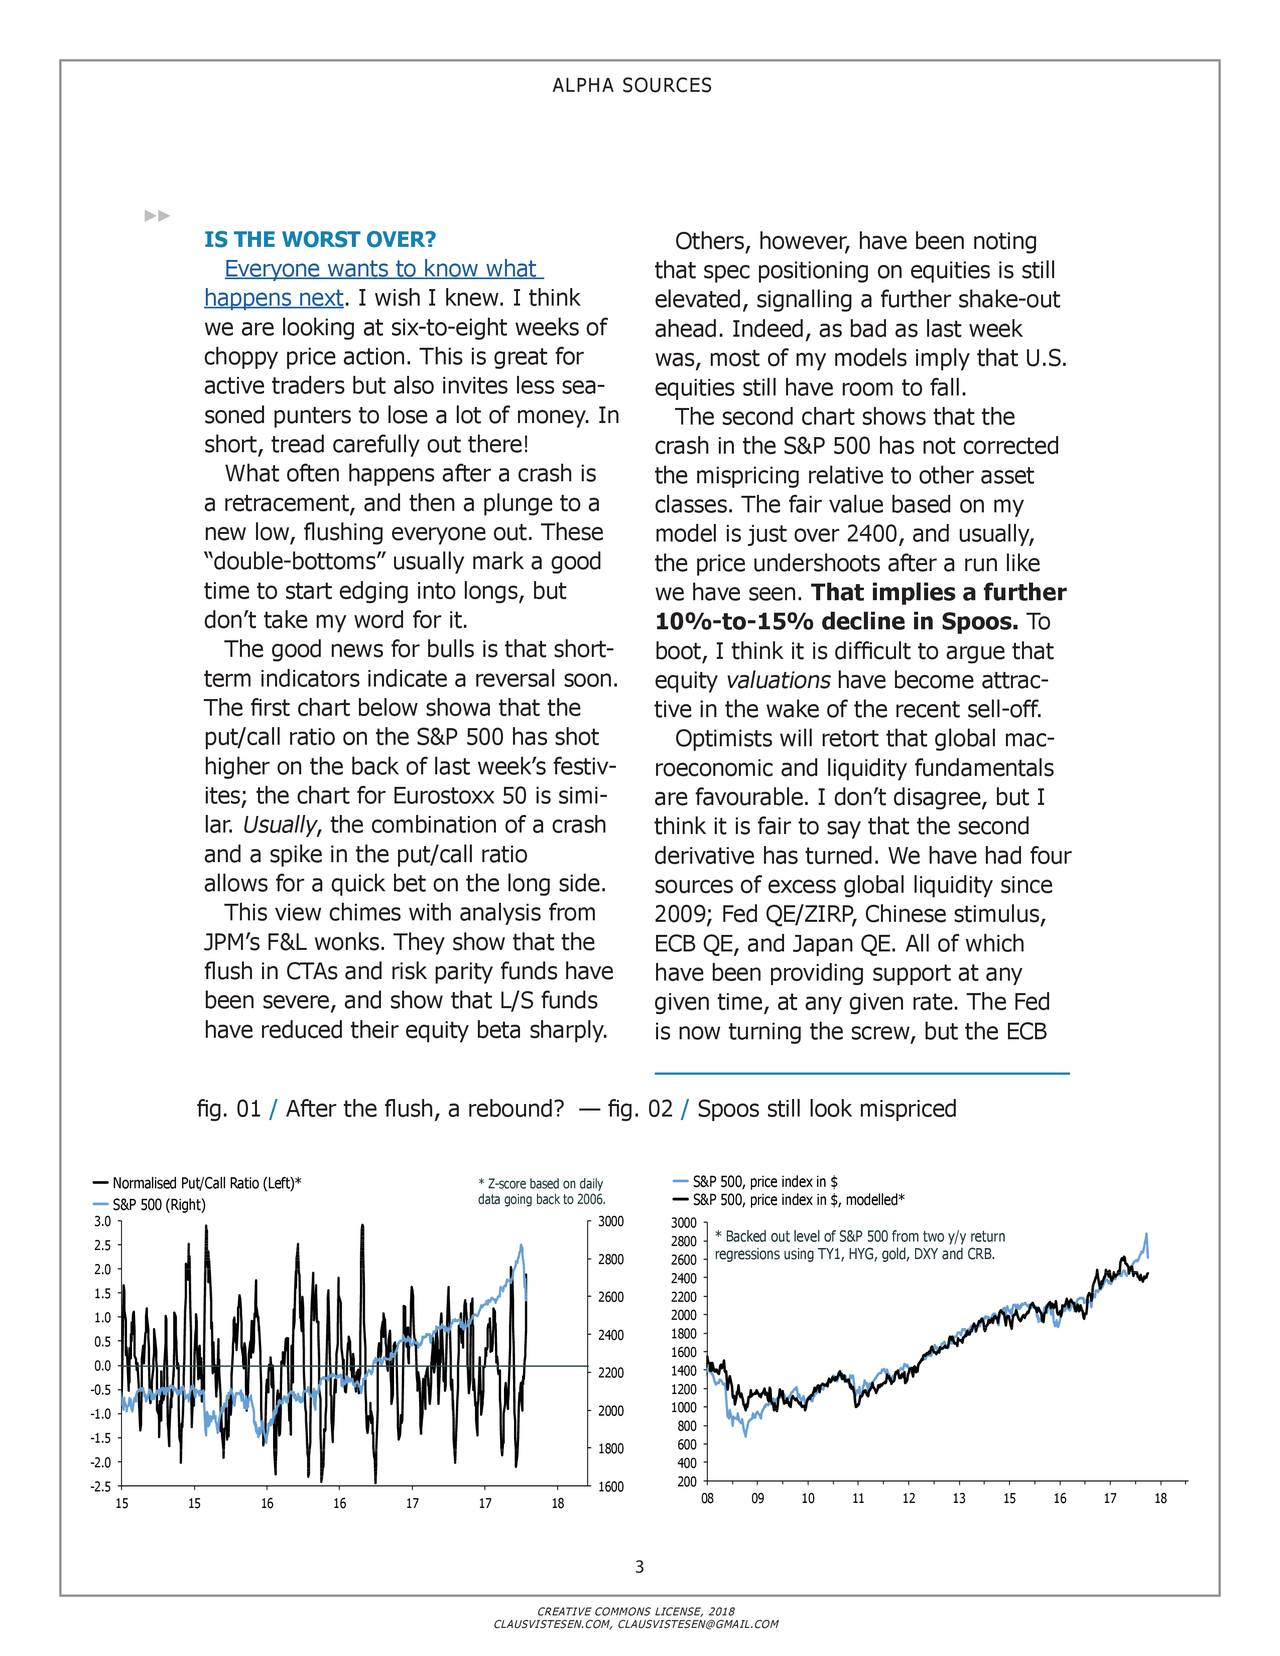 """IS THE WORST OVER? Others, however, have been noting Everyone wants to know what that spec positioning on equities is still happens next. I wish I knew. I think elevated, signalling a further shake-out we are looking at six-to-eight weeks of ahead. Indeed, as bad as last week choppy price action. This is great for was, most of my models imply that U.S. active traders but also invites less sea- equities still have room to fall. soned punters to lose a lot of money. In The second chart shows that the short, tread carefully out there! crash in the S&P 500 has not corrected What often happens after a crash is the mispricing relative to other asset a retracement, and then a plunge to a classes. The fair value based on my new low, flushing everyone out. These model is just over 2400, and usually, """"double-bottoms"""" usually mark a good the price undershoots after a run like time to start edging into longs, but we have seen. That implies a further don't take my word for it. 10%-to-15% decline in Spoos. To The good news for bulls is that short- boot, I think it is difficult to argue that term indicators indicate a reversal soon. equity valuations have become attrac- The first chart below showa that the tive in the wake of the recent sell-off. put/call ratio on the S&P 500 has shot Optimists will retort that global mac - higher on the back of last week's festiv - roeconomic and liquidity fundamentals ites; the chart for Eurostoxx 50 is simi - are favourable. I don't disagree, but I lar. Usually, the combination of a crash think it is fair to say that the second and a spike in the put/call ratio derivative has turned. We have had four allows for a quick bet on the long side. sources of excess global liquidity since This view chimes with analysis from 2009; Fed QE/ZIRP, Chinese stimulus, JPM's F&L wonks. They show that the ECB QE, and Japan QE. All of which flush in CTAs and risk parity funds have have been providing support at any been severe, and show that L/S funds given time,"""